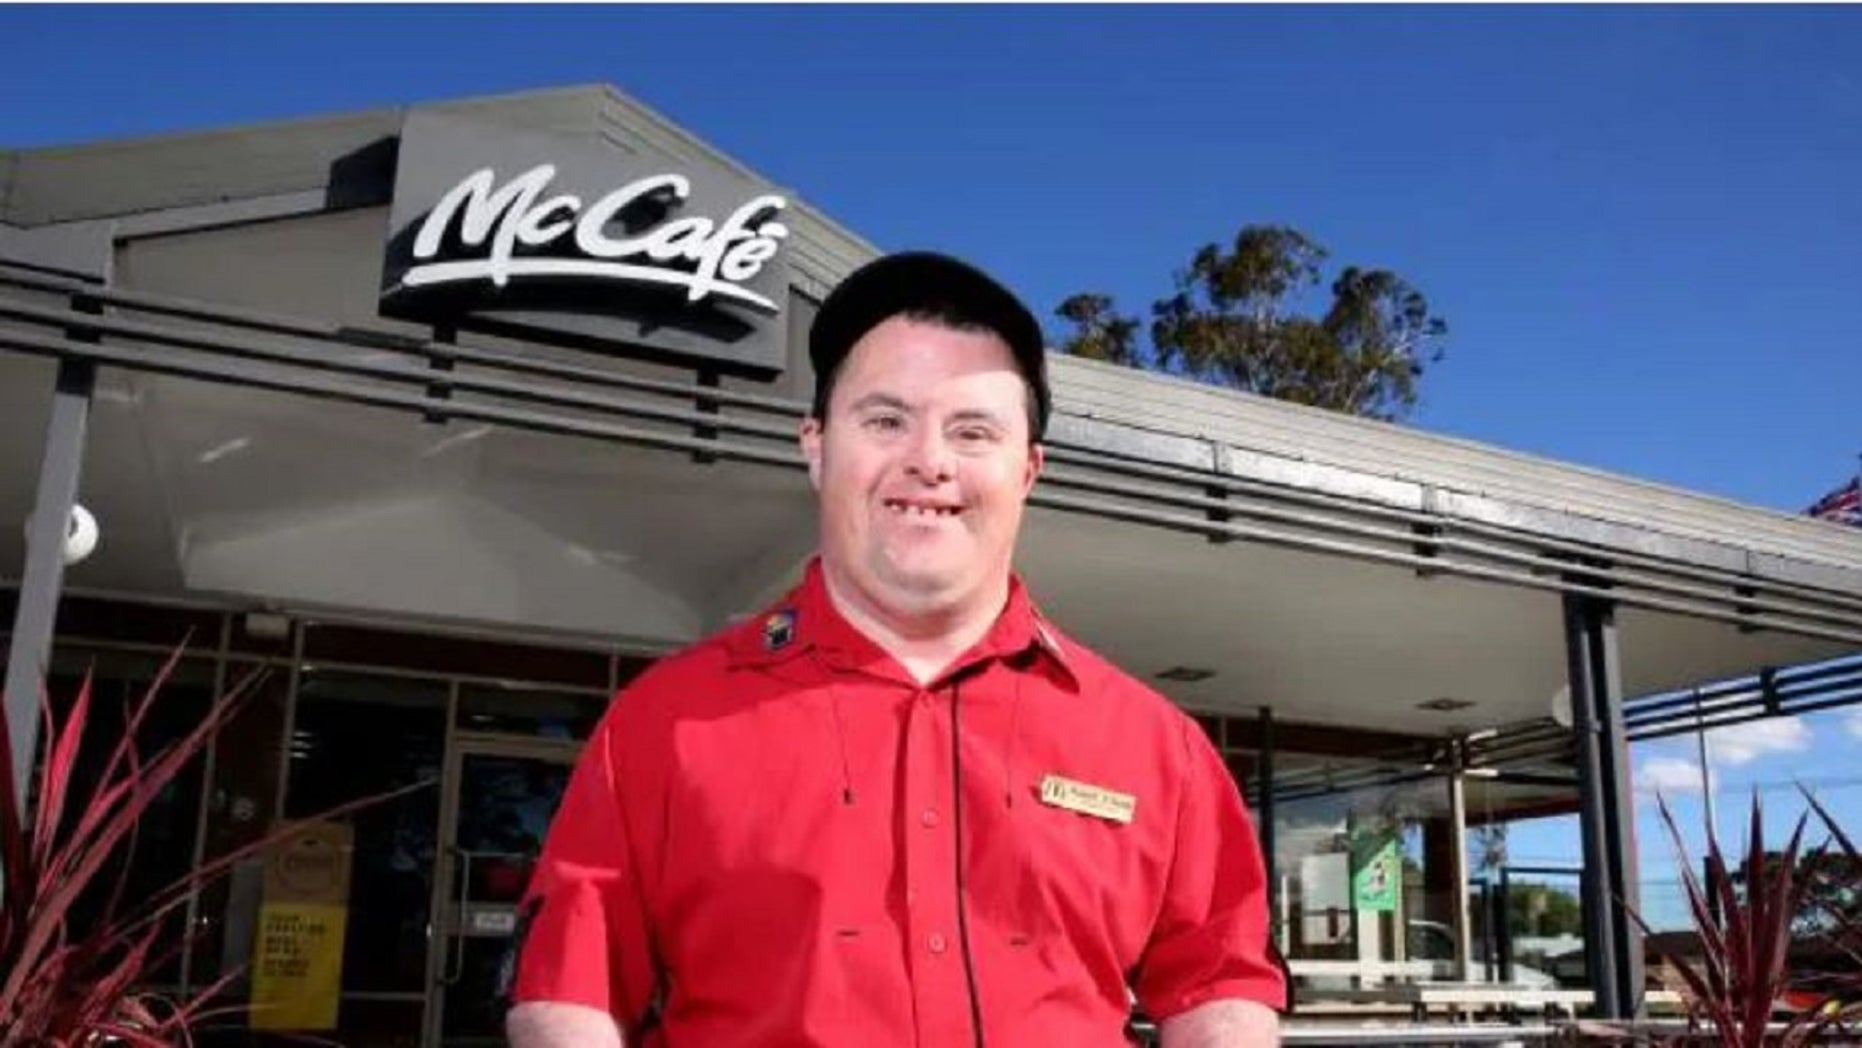 Russell O'Grady retired last week from working at a McDonald's in Northmead, Australia, about 30 minutes northwest of Sydney.